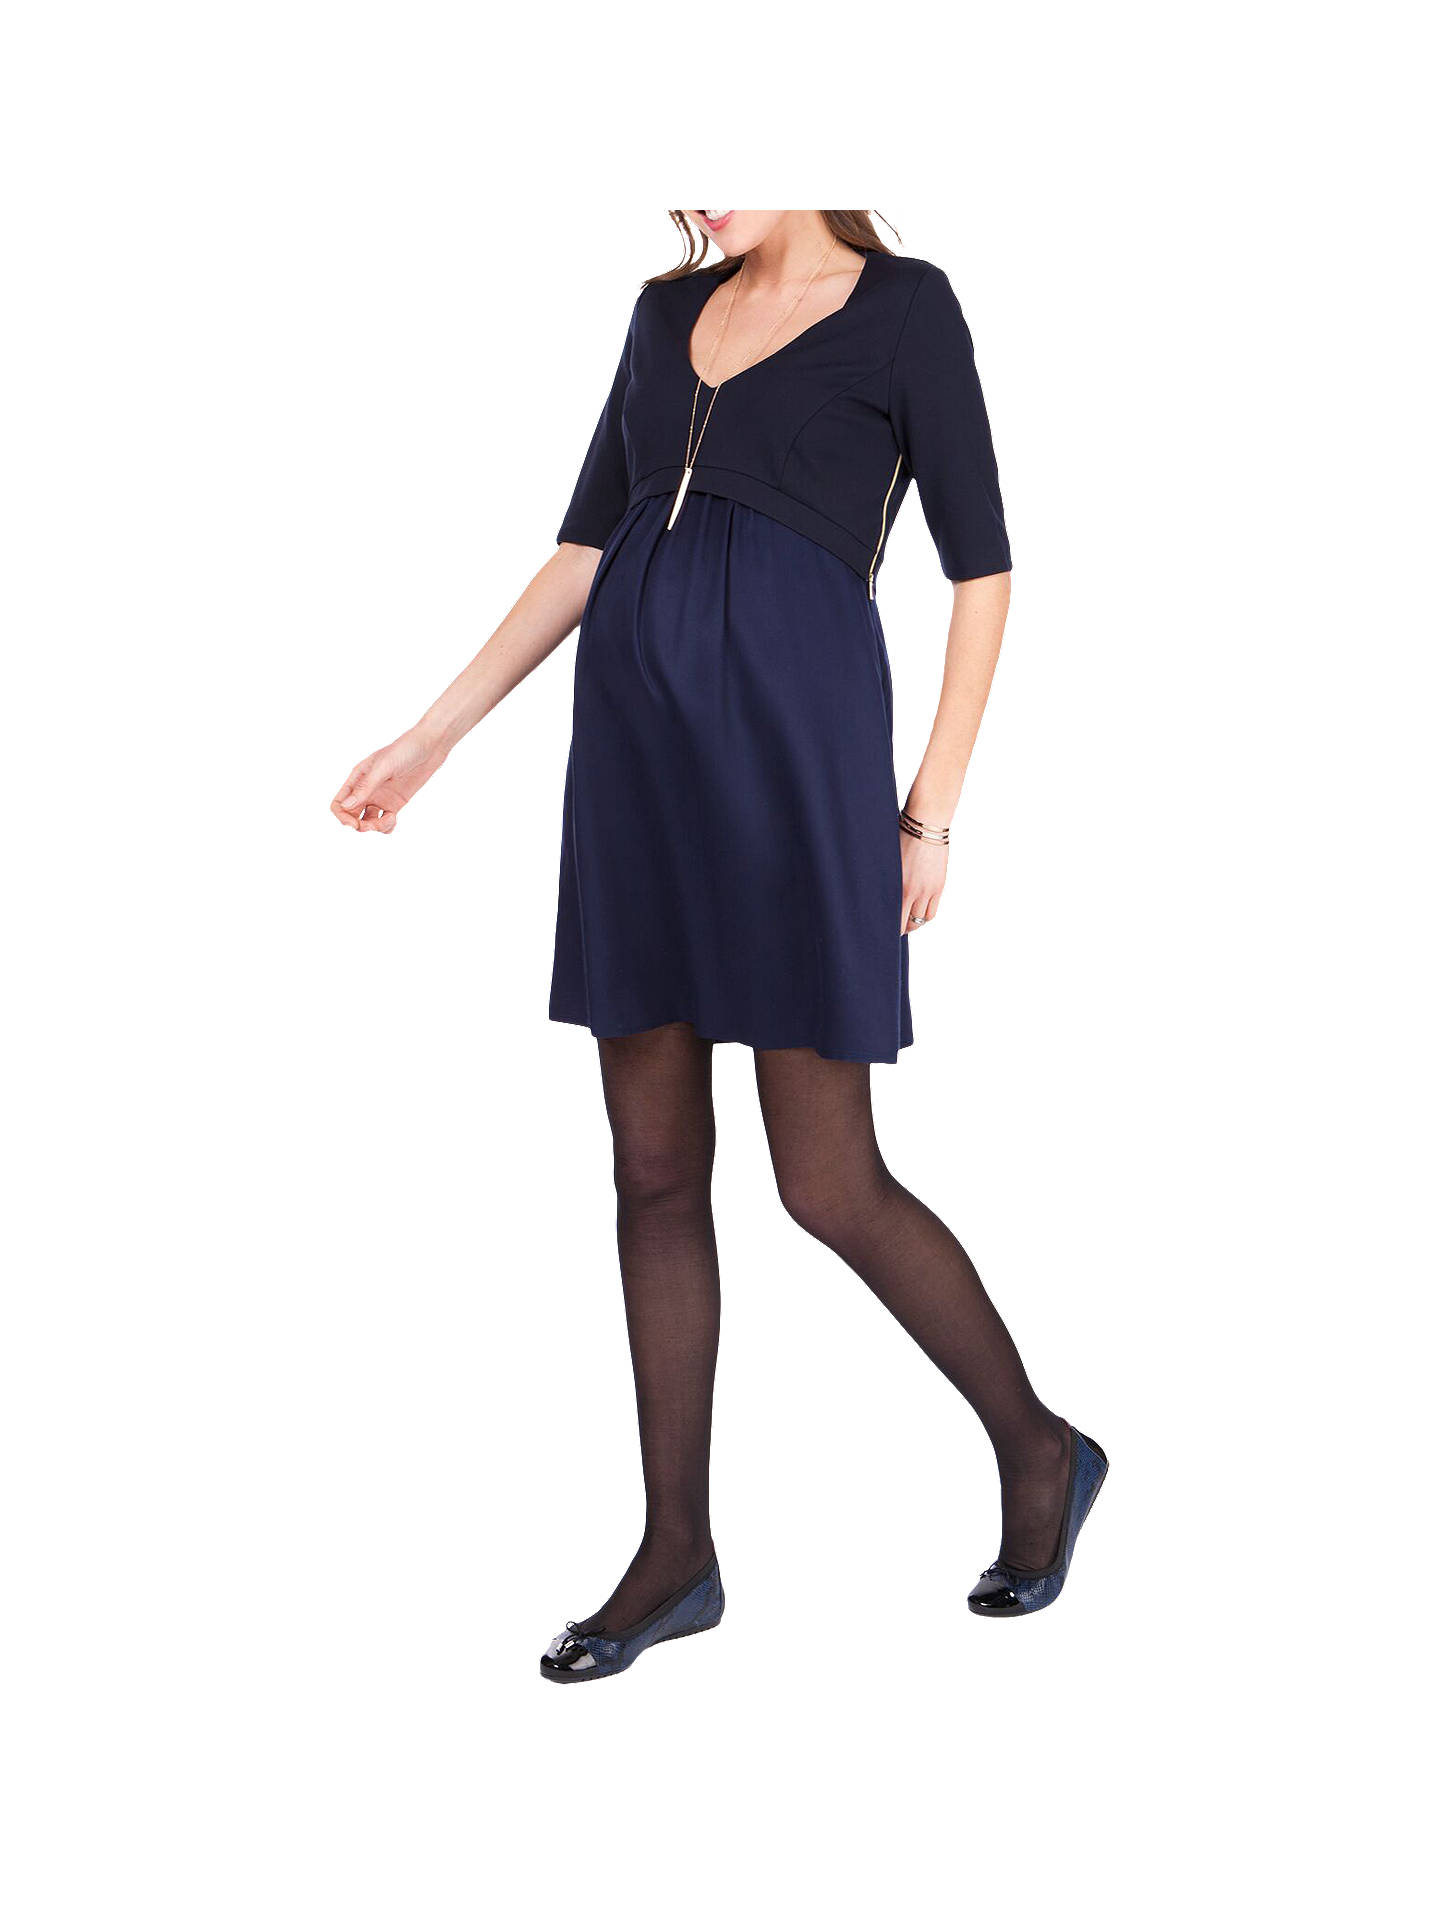 31a605dc1223c Buy Séraphine Lucy Maternity Nursing Dress, Navy, 8 Online at johnlewis.com  ...